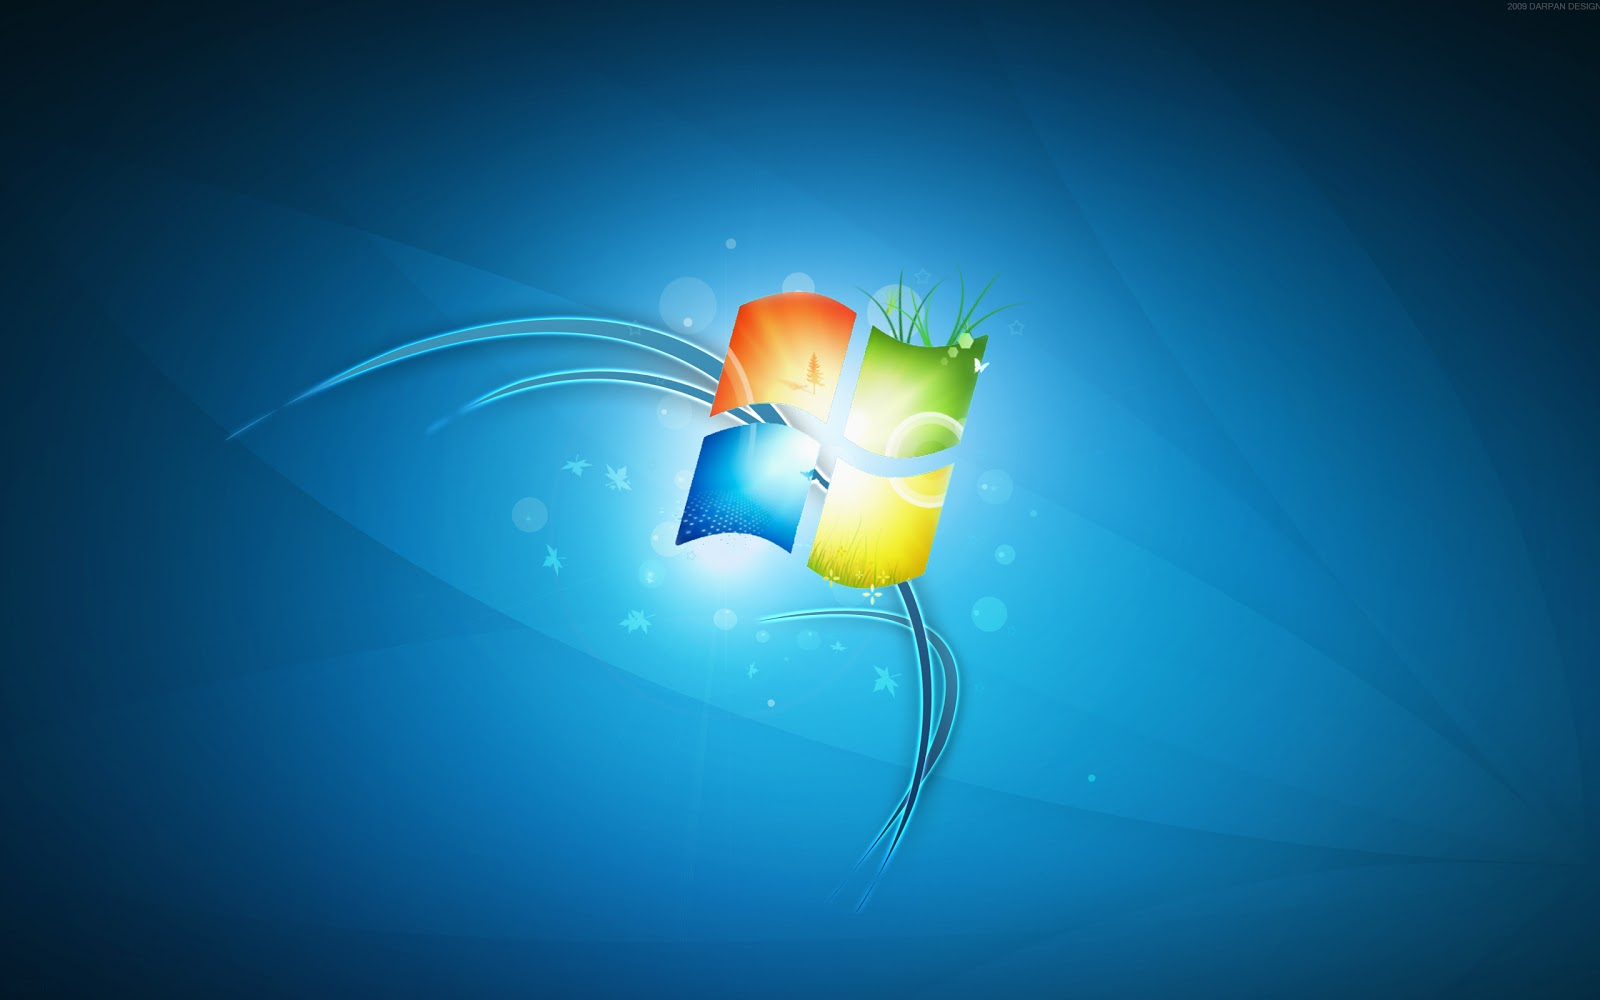 windows 7 hd wallpapers 1080ptop wallpapers | download the top